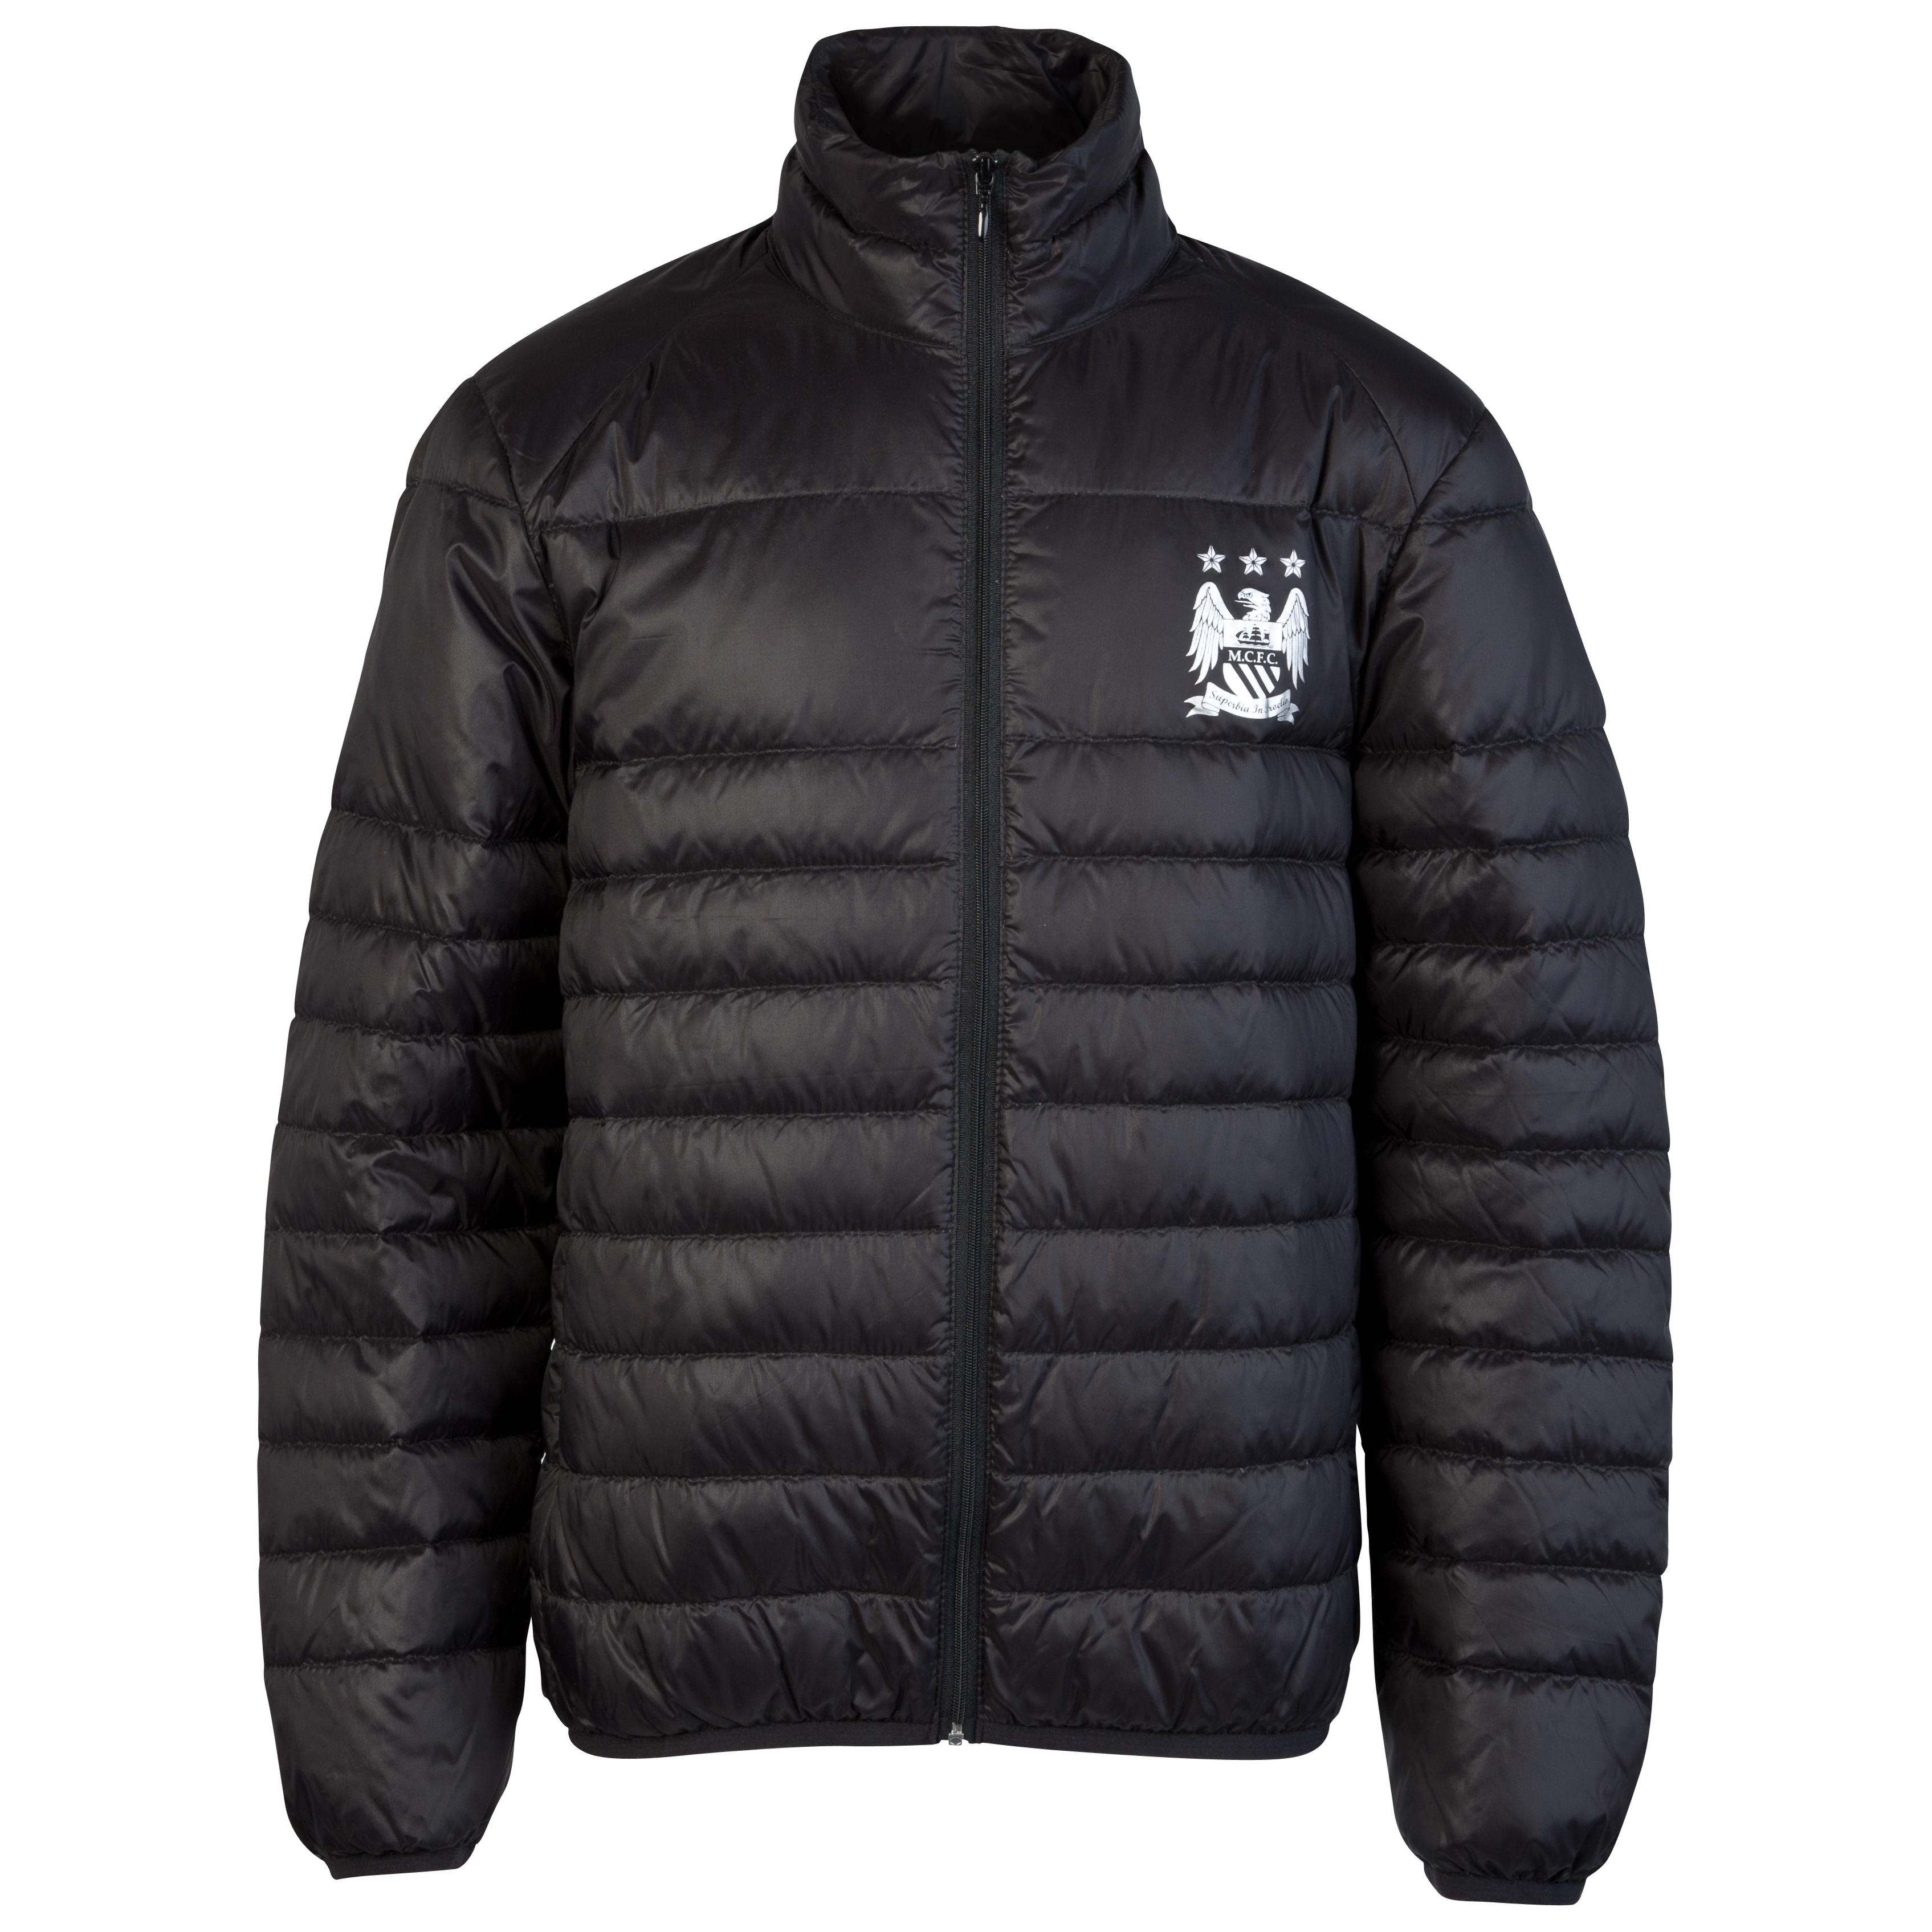 Manchester City Performance Orka Jacket - Black - Older Boys